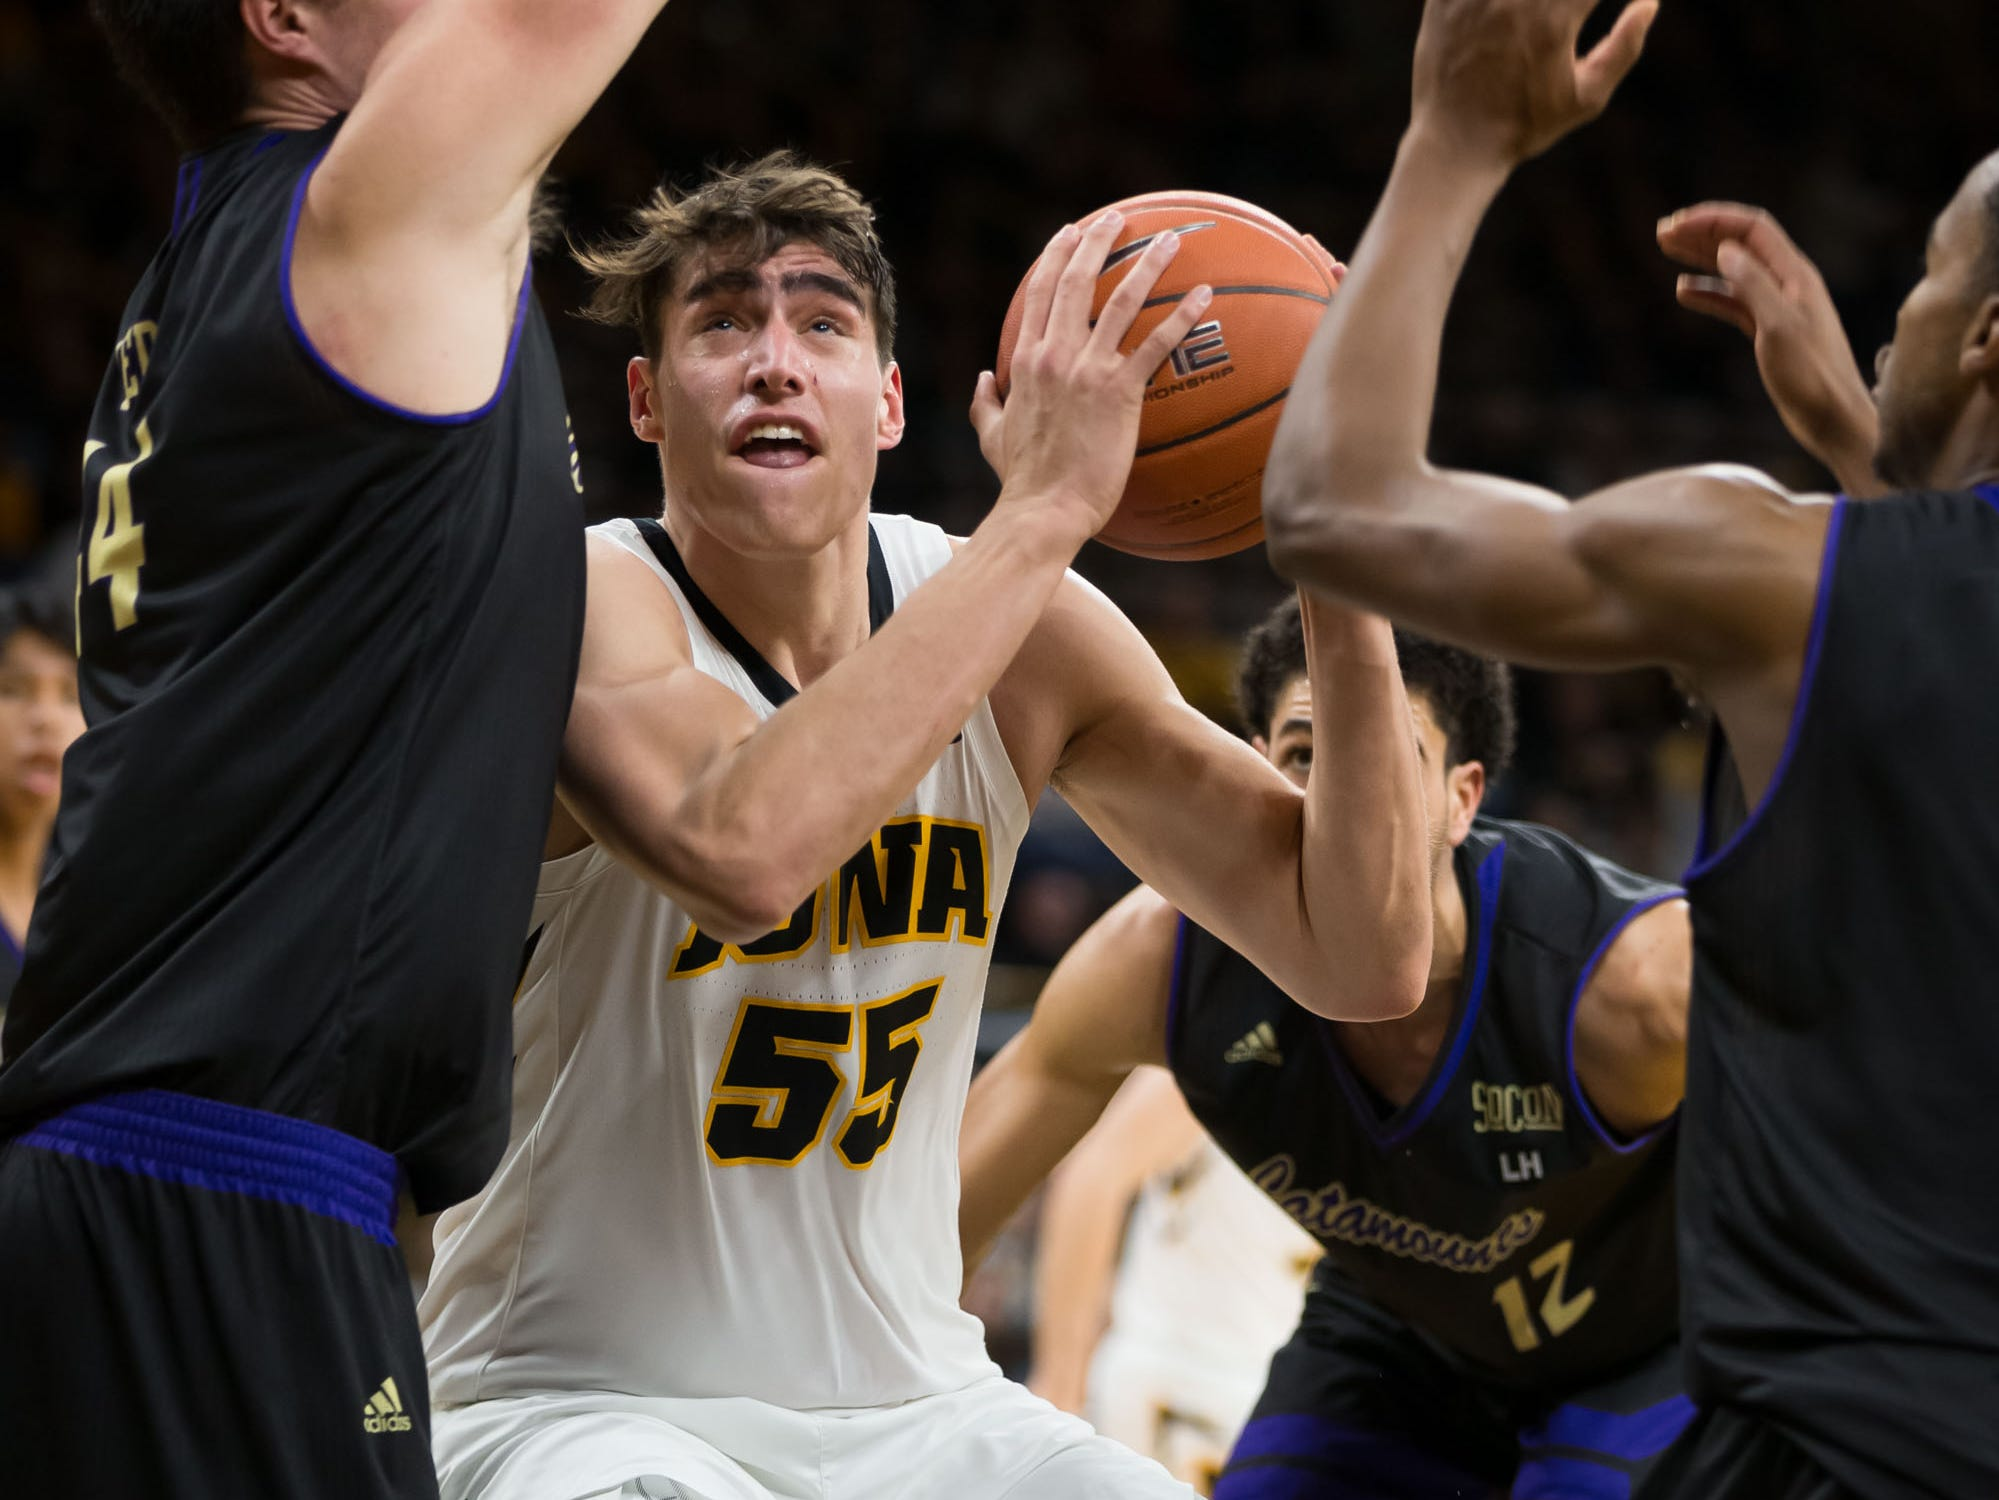 Iowa sophomore forward Luka Garza (55) clambors for a shot in traffic in the second half at Carver Hawkeye Arena in Iowa City on Tuesday, Dec. 18, 2018.